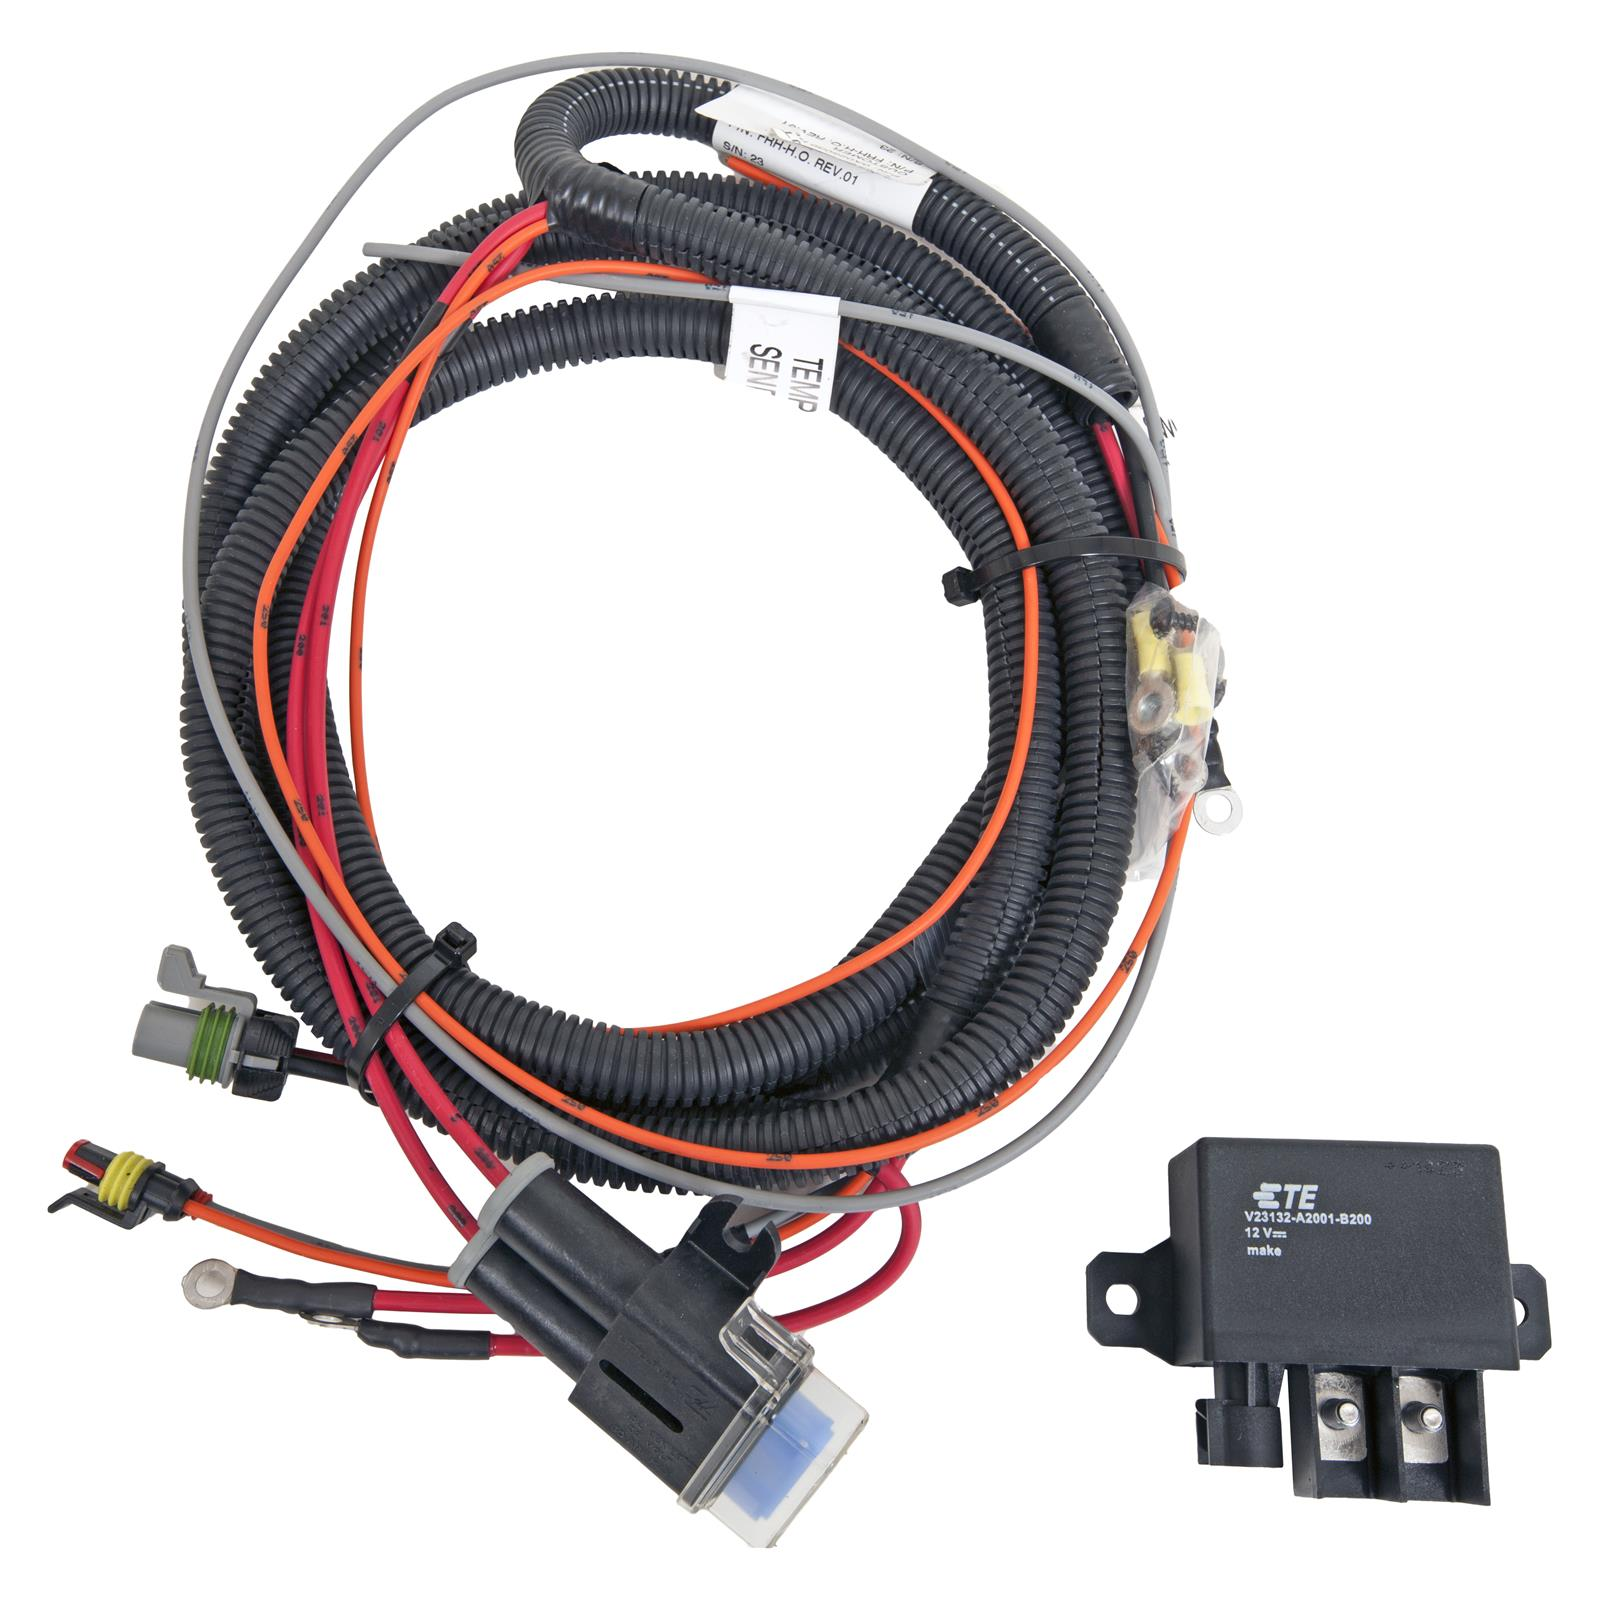 hight resolution of spal electric fan relay wiring kits frh ho kit free shipping on orders over 99 at summit racing